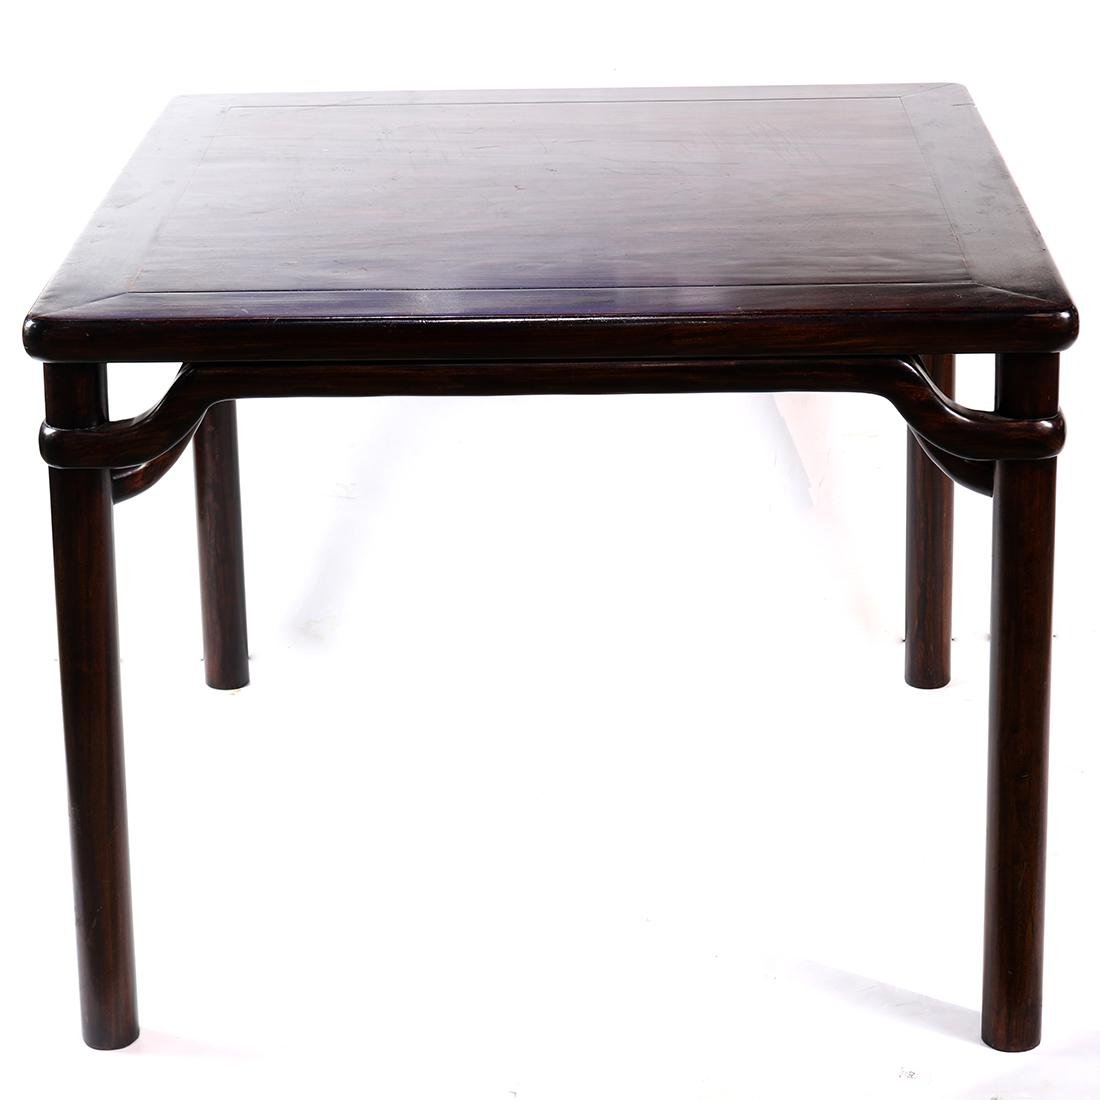 Chinese Wood Square Table - 2